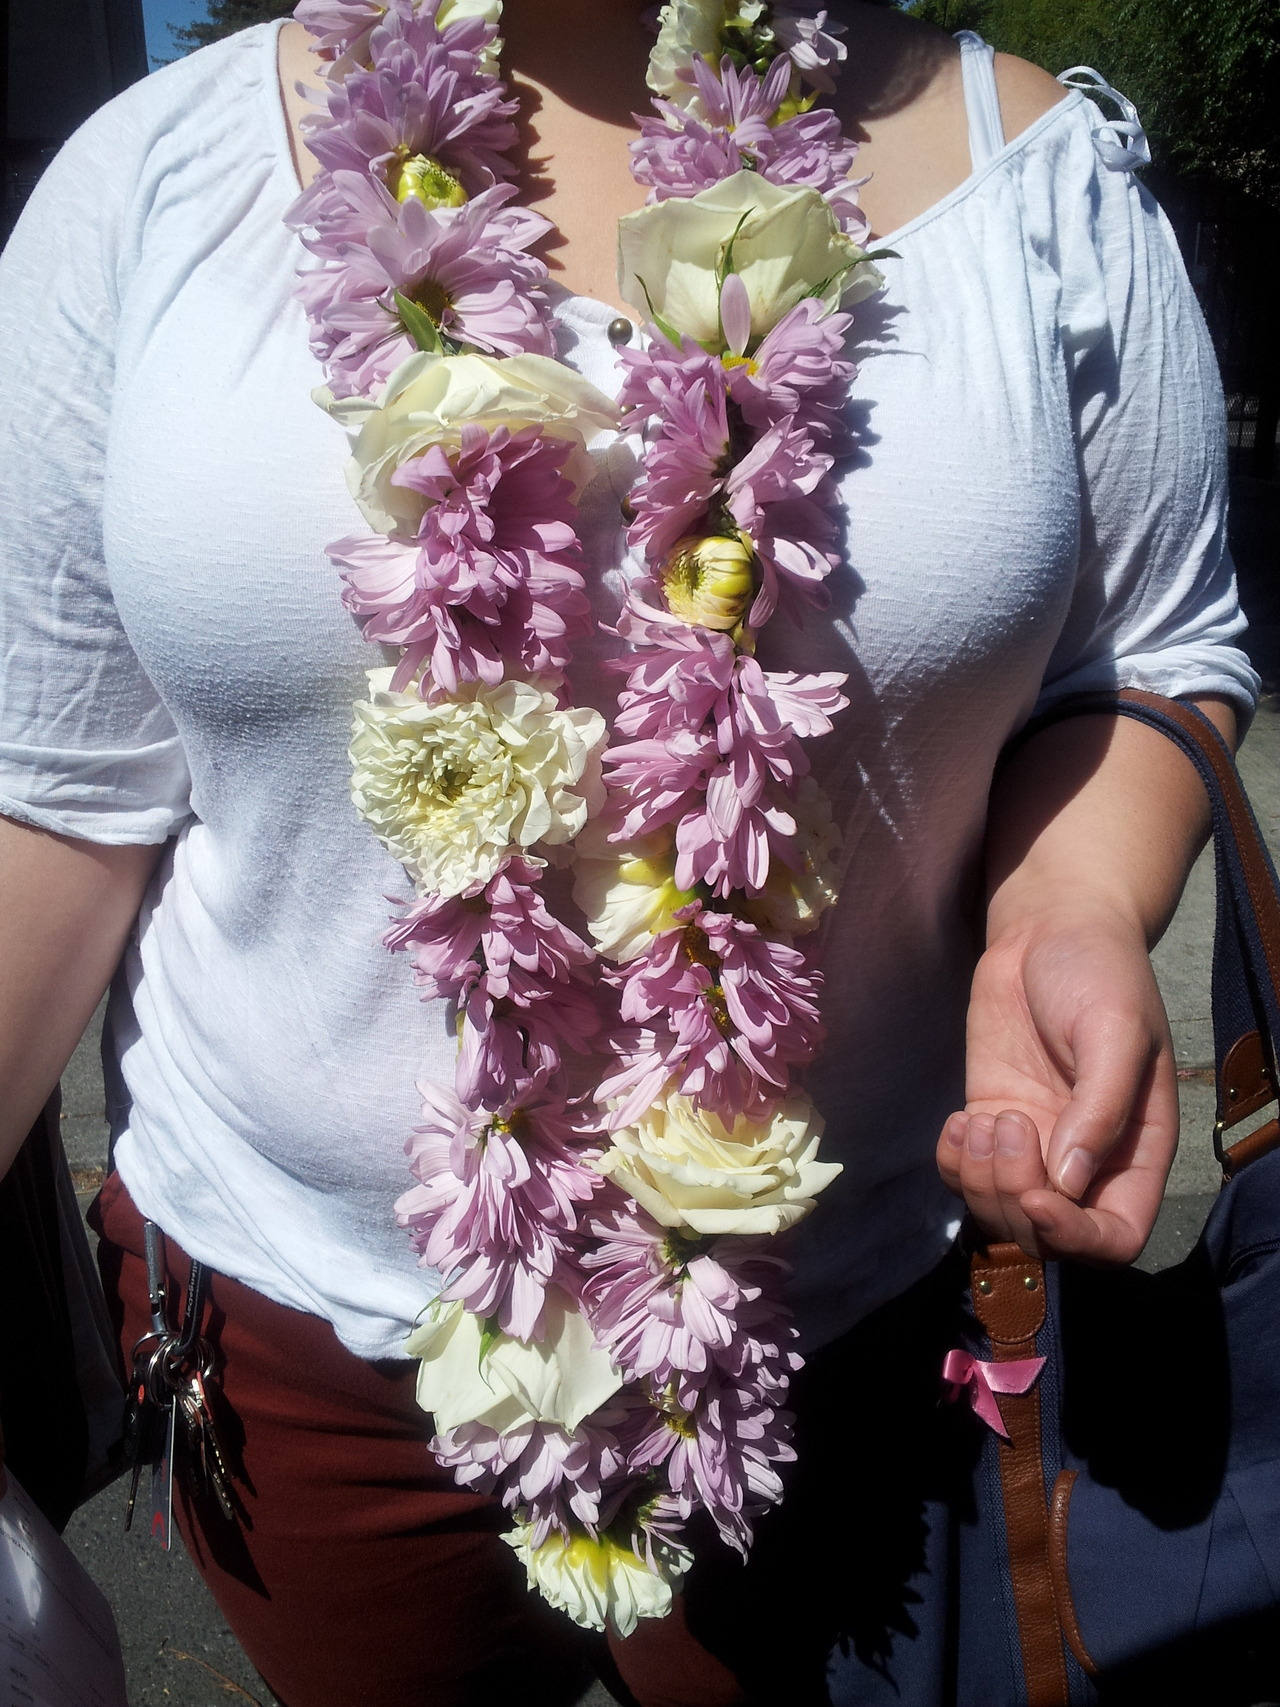 Custom made Fresh Flower Lei for Graduation made of Daisies, Dahlias, Roses.